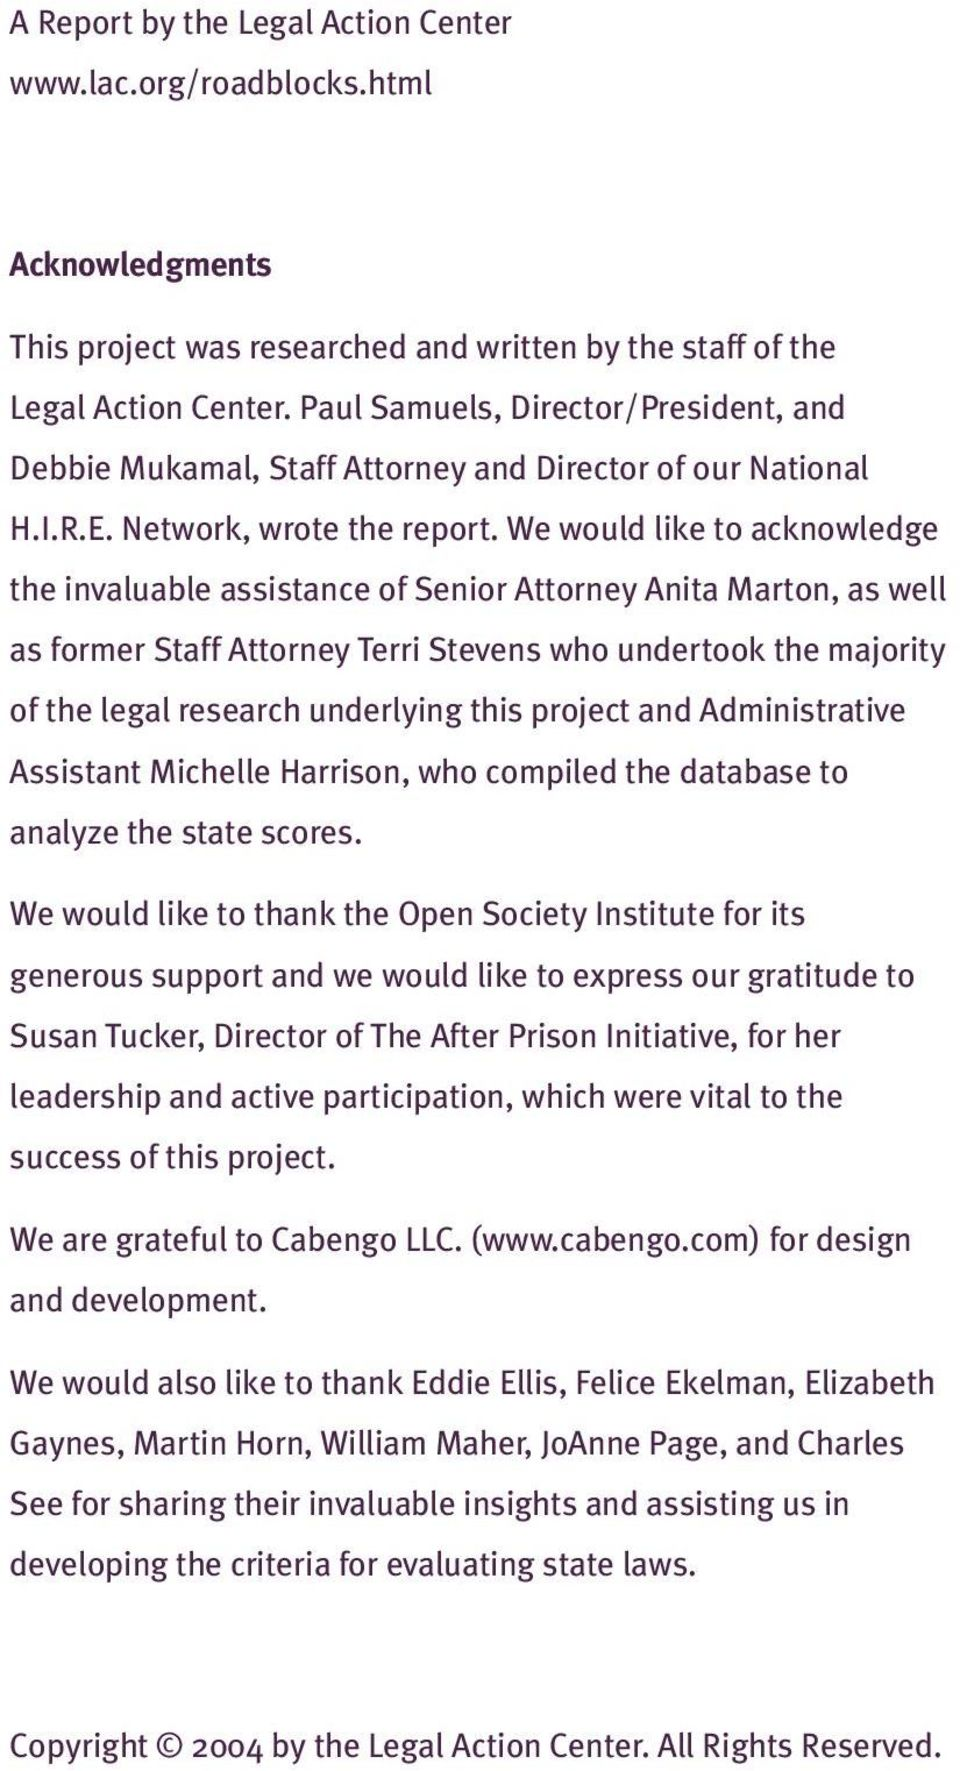 We would like to acknowledge the invaluable assistance of Senior Attorney Anita Marton, as well as former Staff Attorney Terri Stevens who undertook the majority of the legal research underlying this